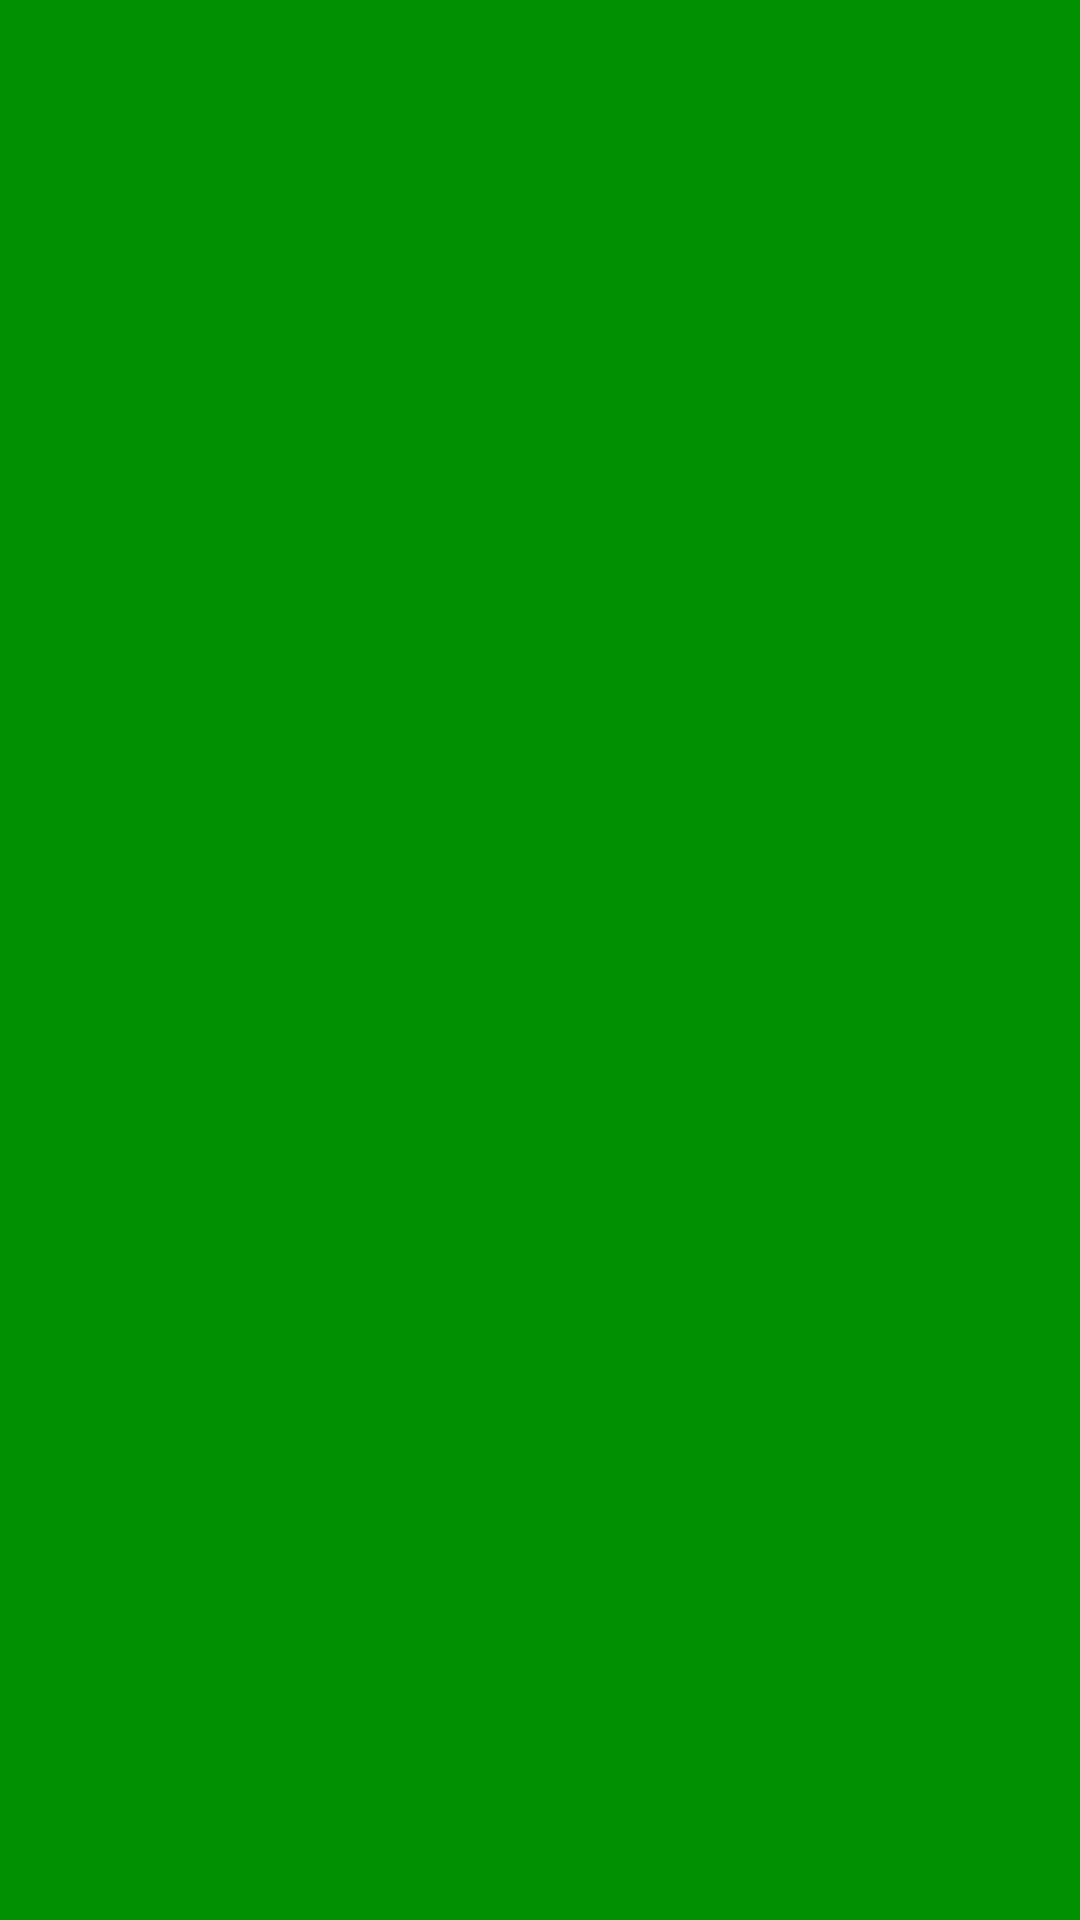 1080x1920 Islamic Green Solid Color Background